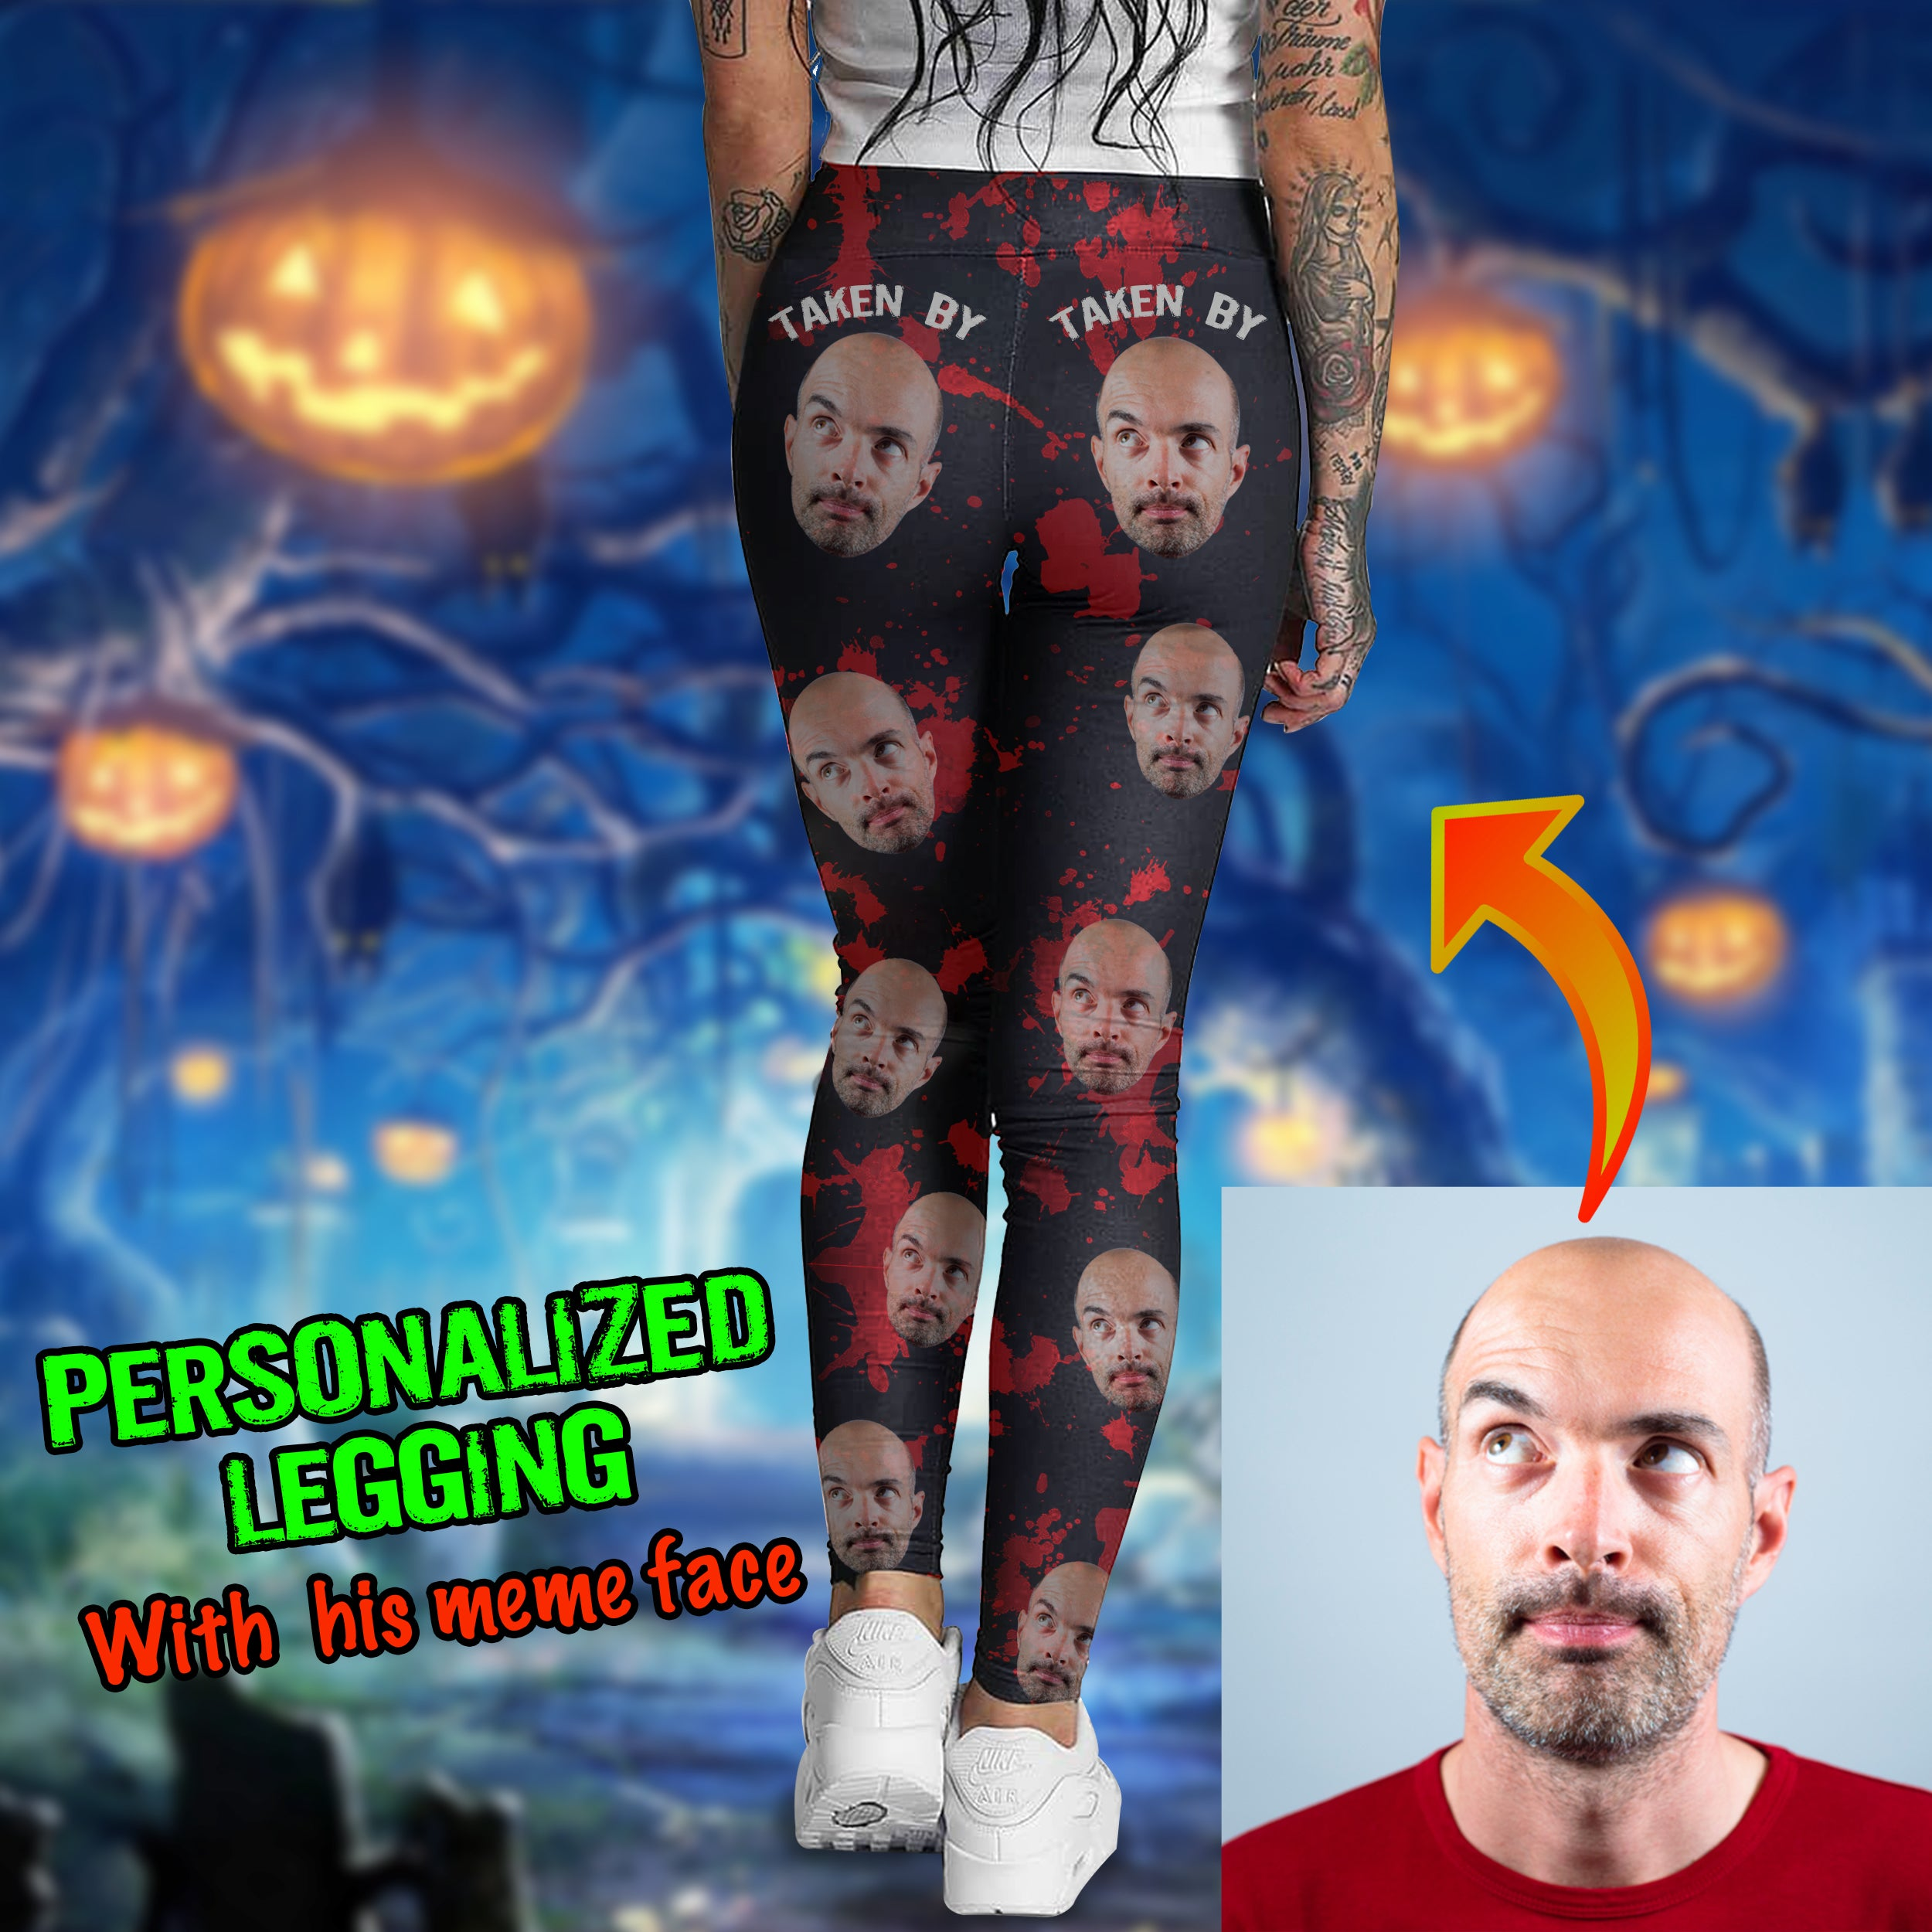 Funny Personalize Legging With Your Face For Halloween Season